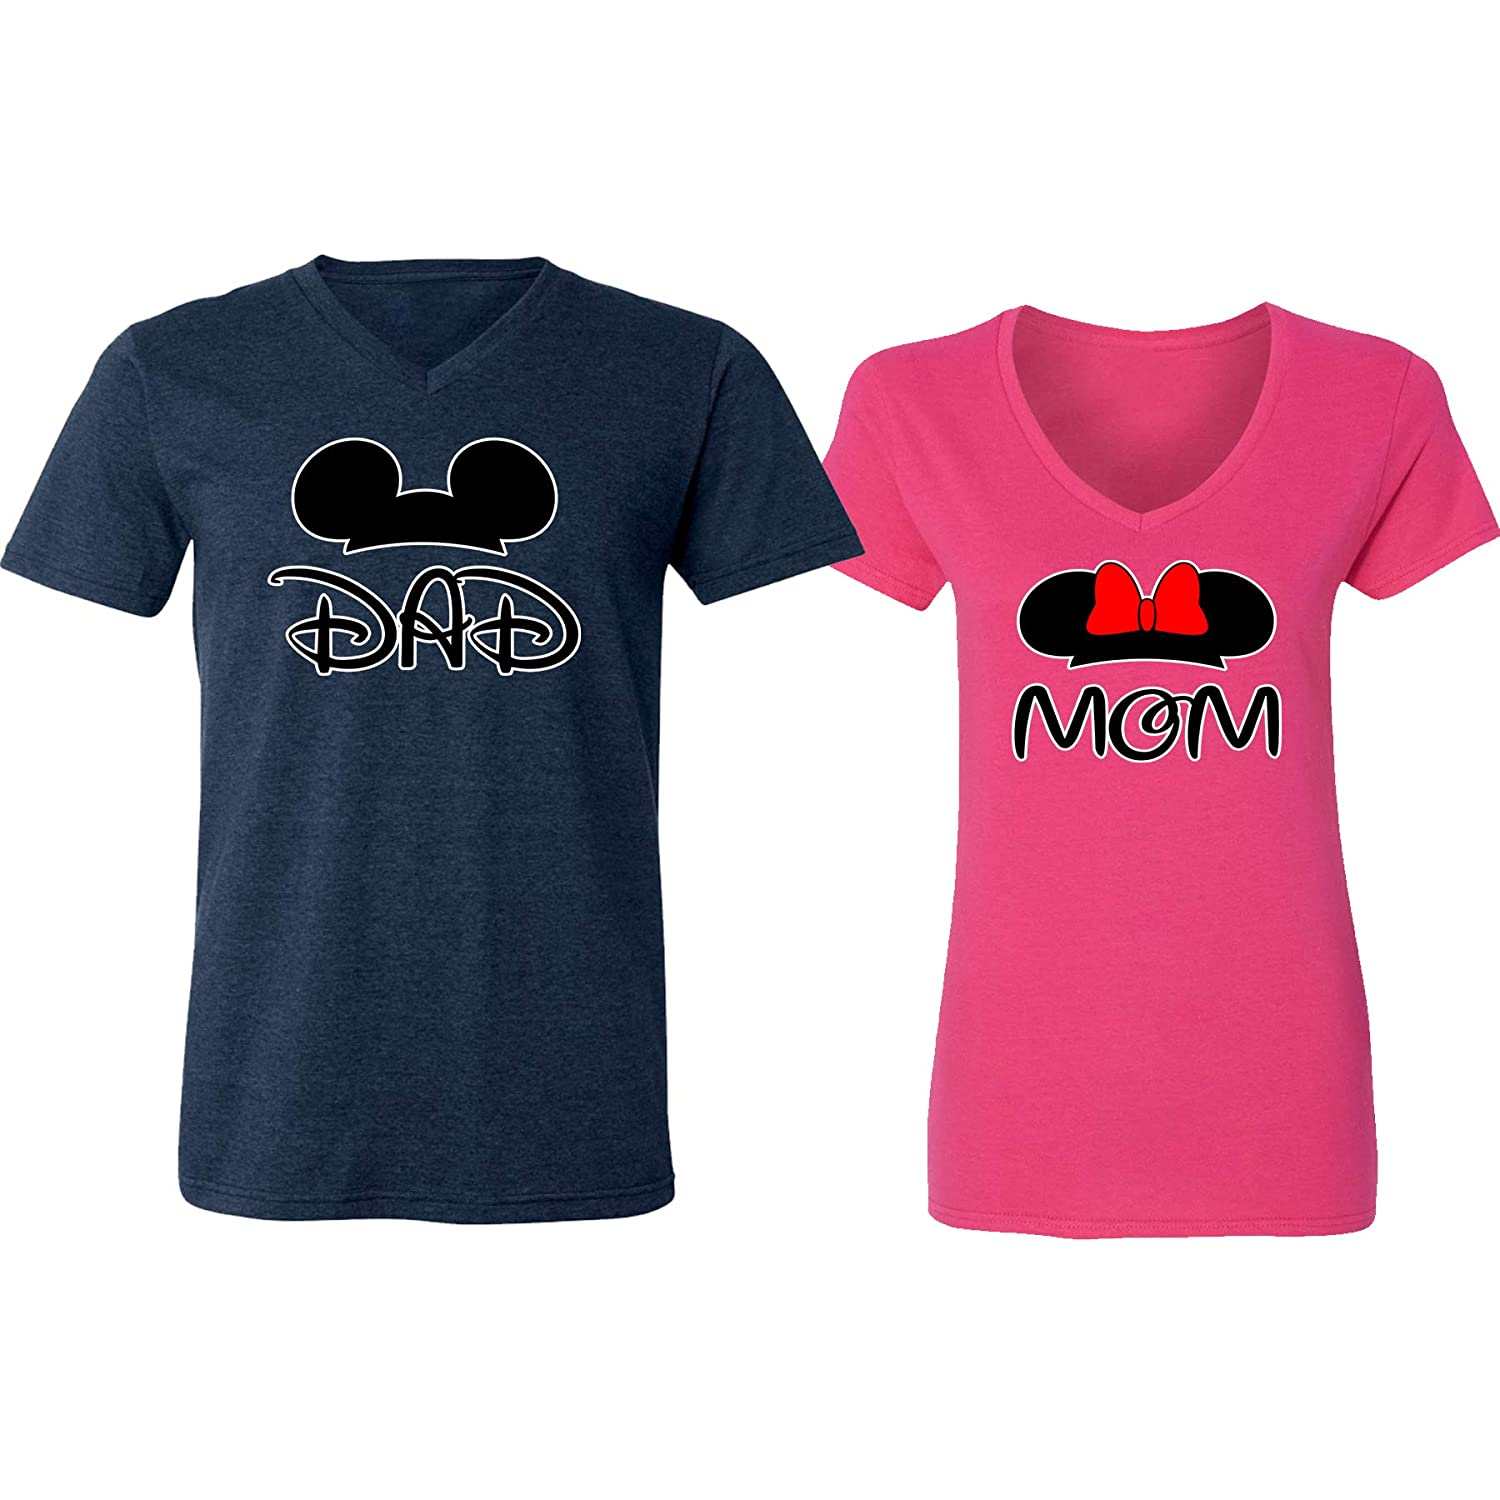 e0ae2cae Amazon.com: GOOD SHOPPERS ACTIVEWEAR Mickey Dad Minnie Mouse Mom Family  Couple Design V-Neck Shirt for Men Women: Clothing